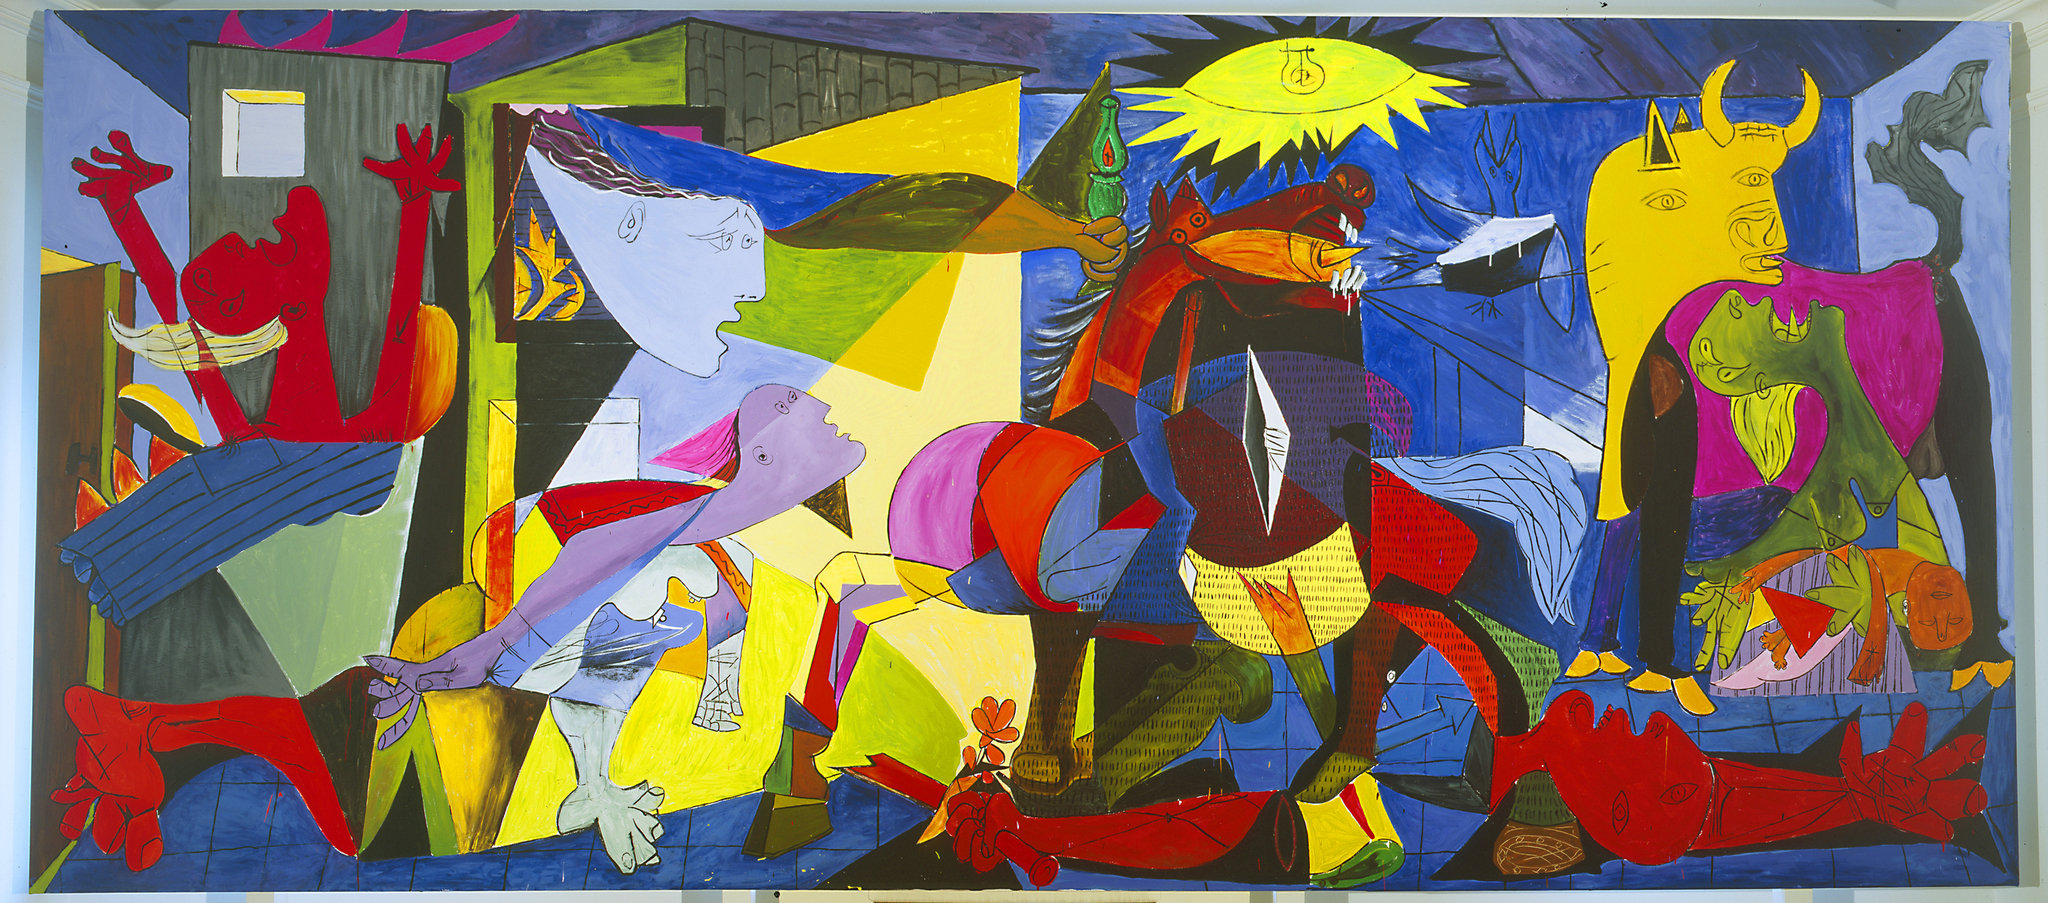 Guernica Cuadro Somewhere Over The Rainbow Distintas Versiones Del